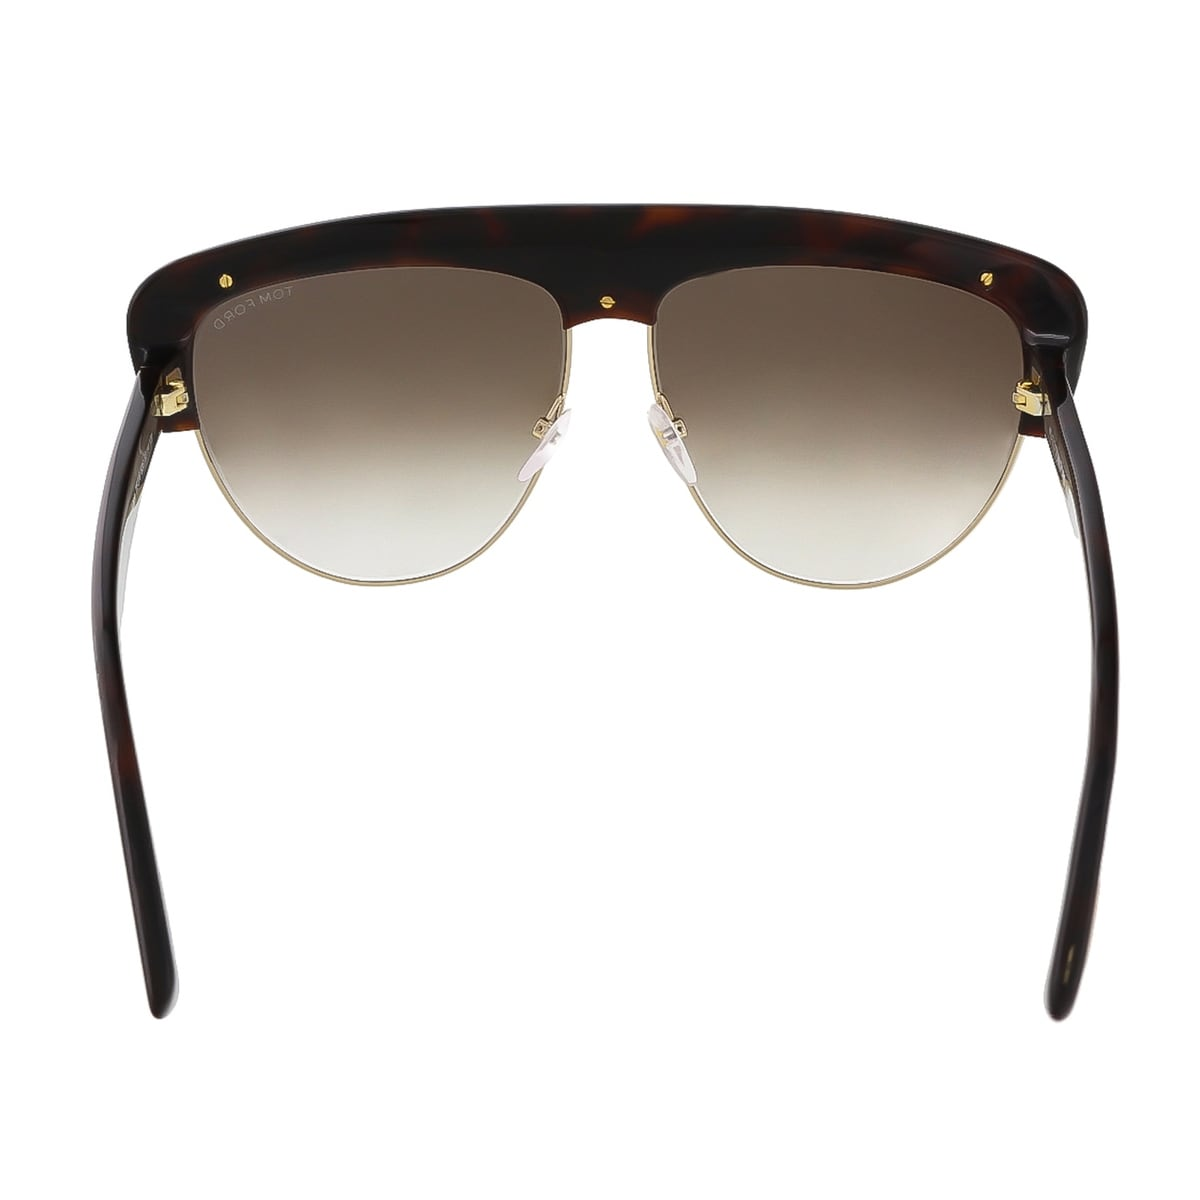 1da5192fa6d1 Shop Tom Ford FT0318 S 52G Liane Brown Aviator Sunglasses - Free Shipping  Today - Overstock - 13241556